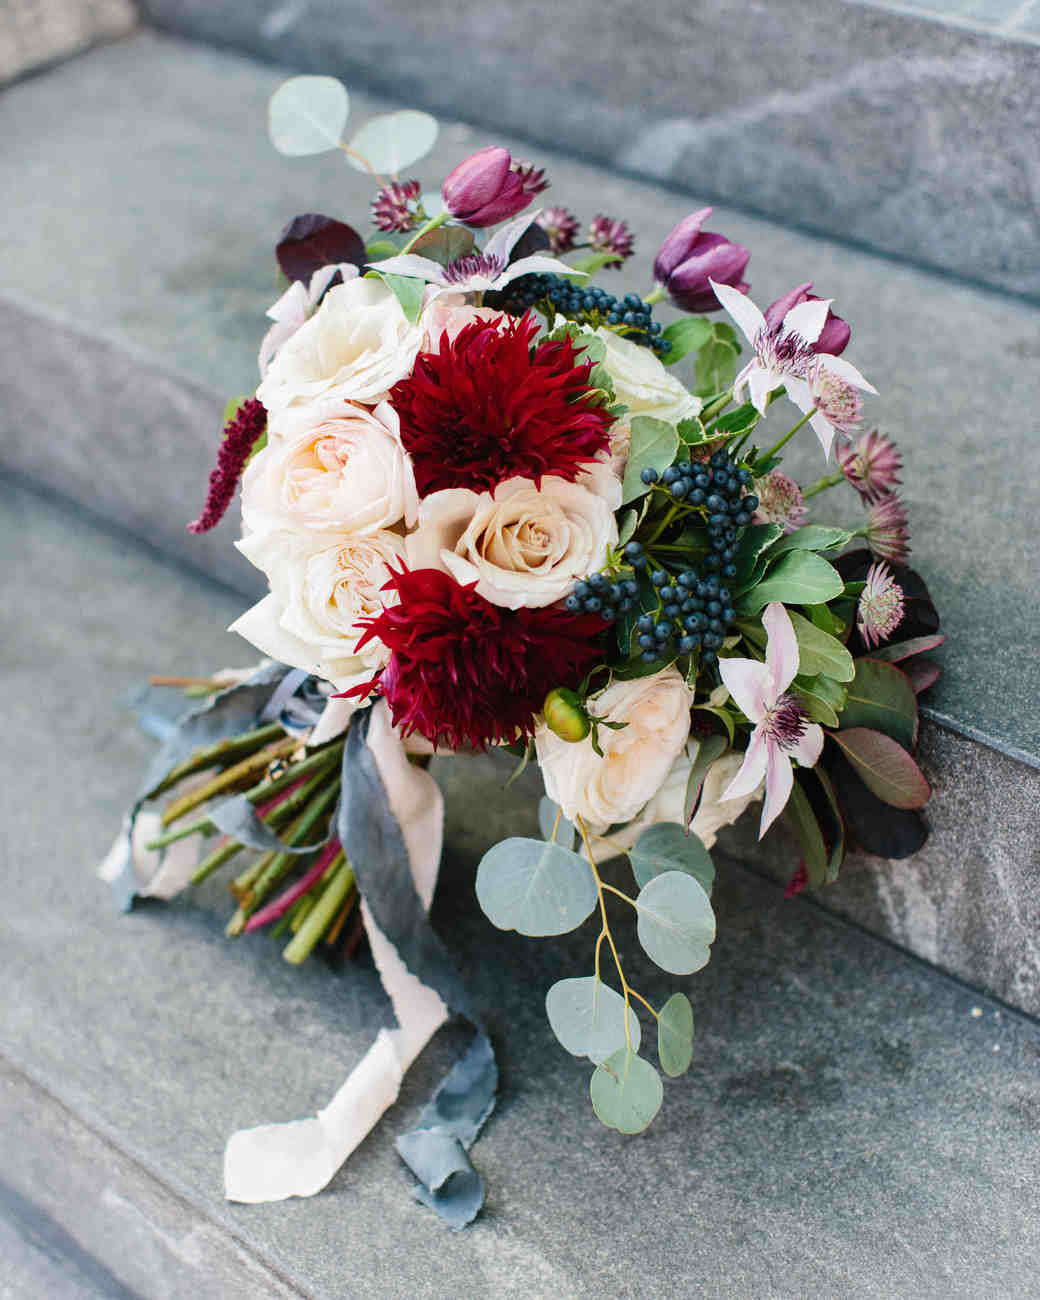 Wedding Flowers: 22 Modern Wedding Bouquets